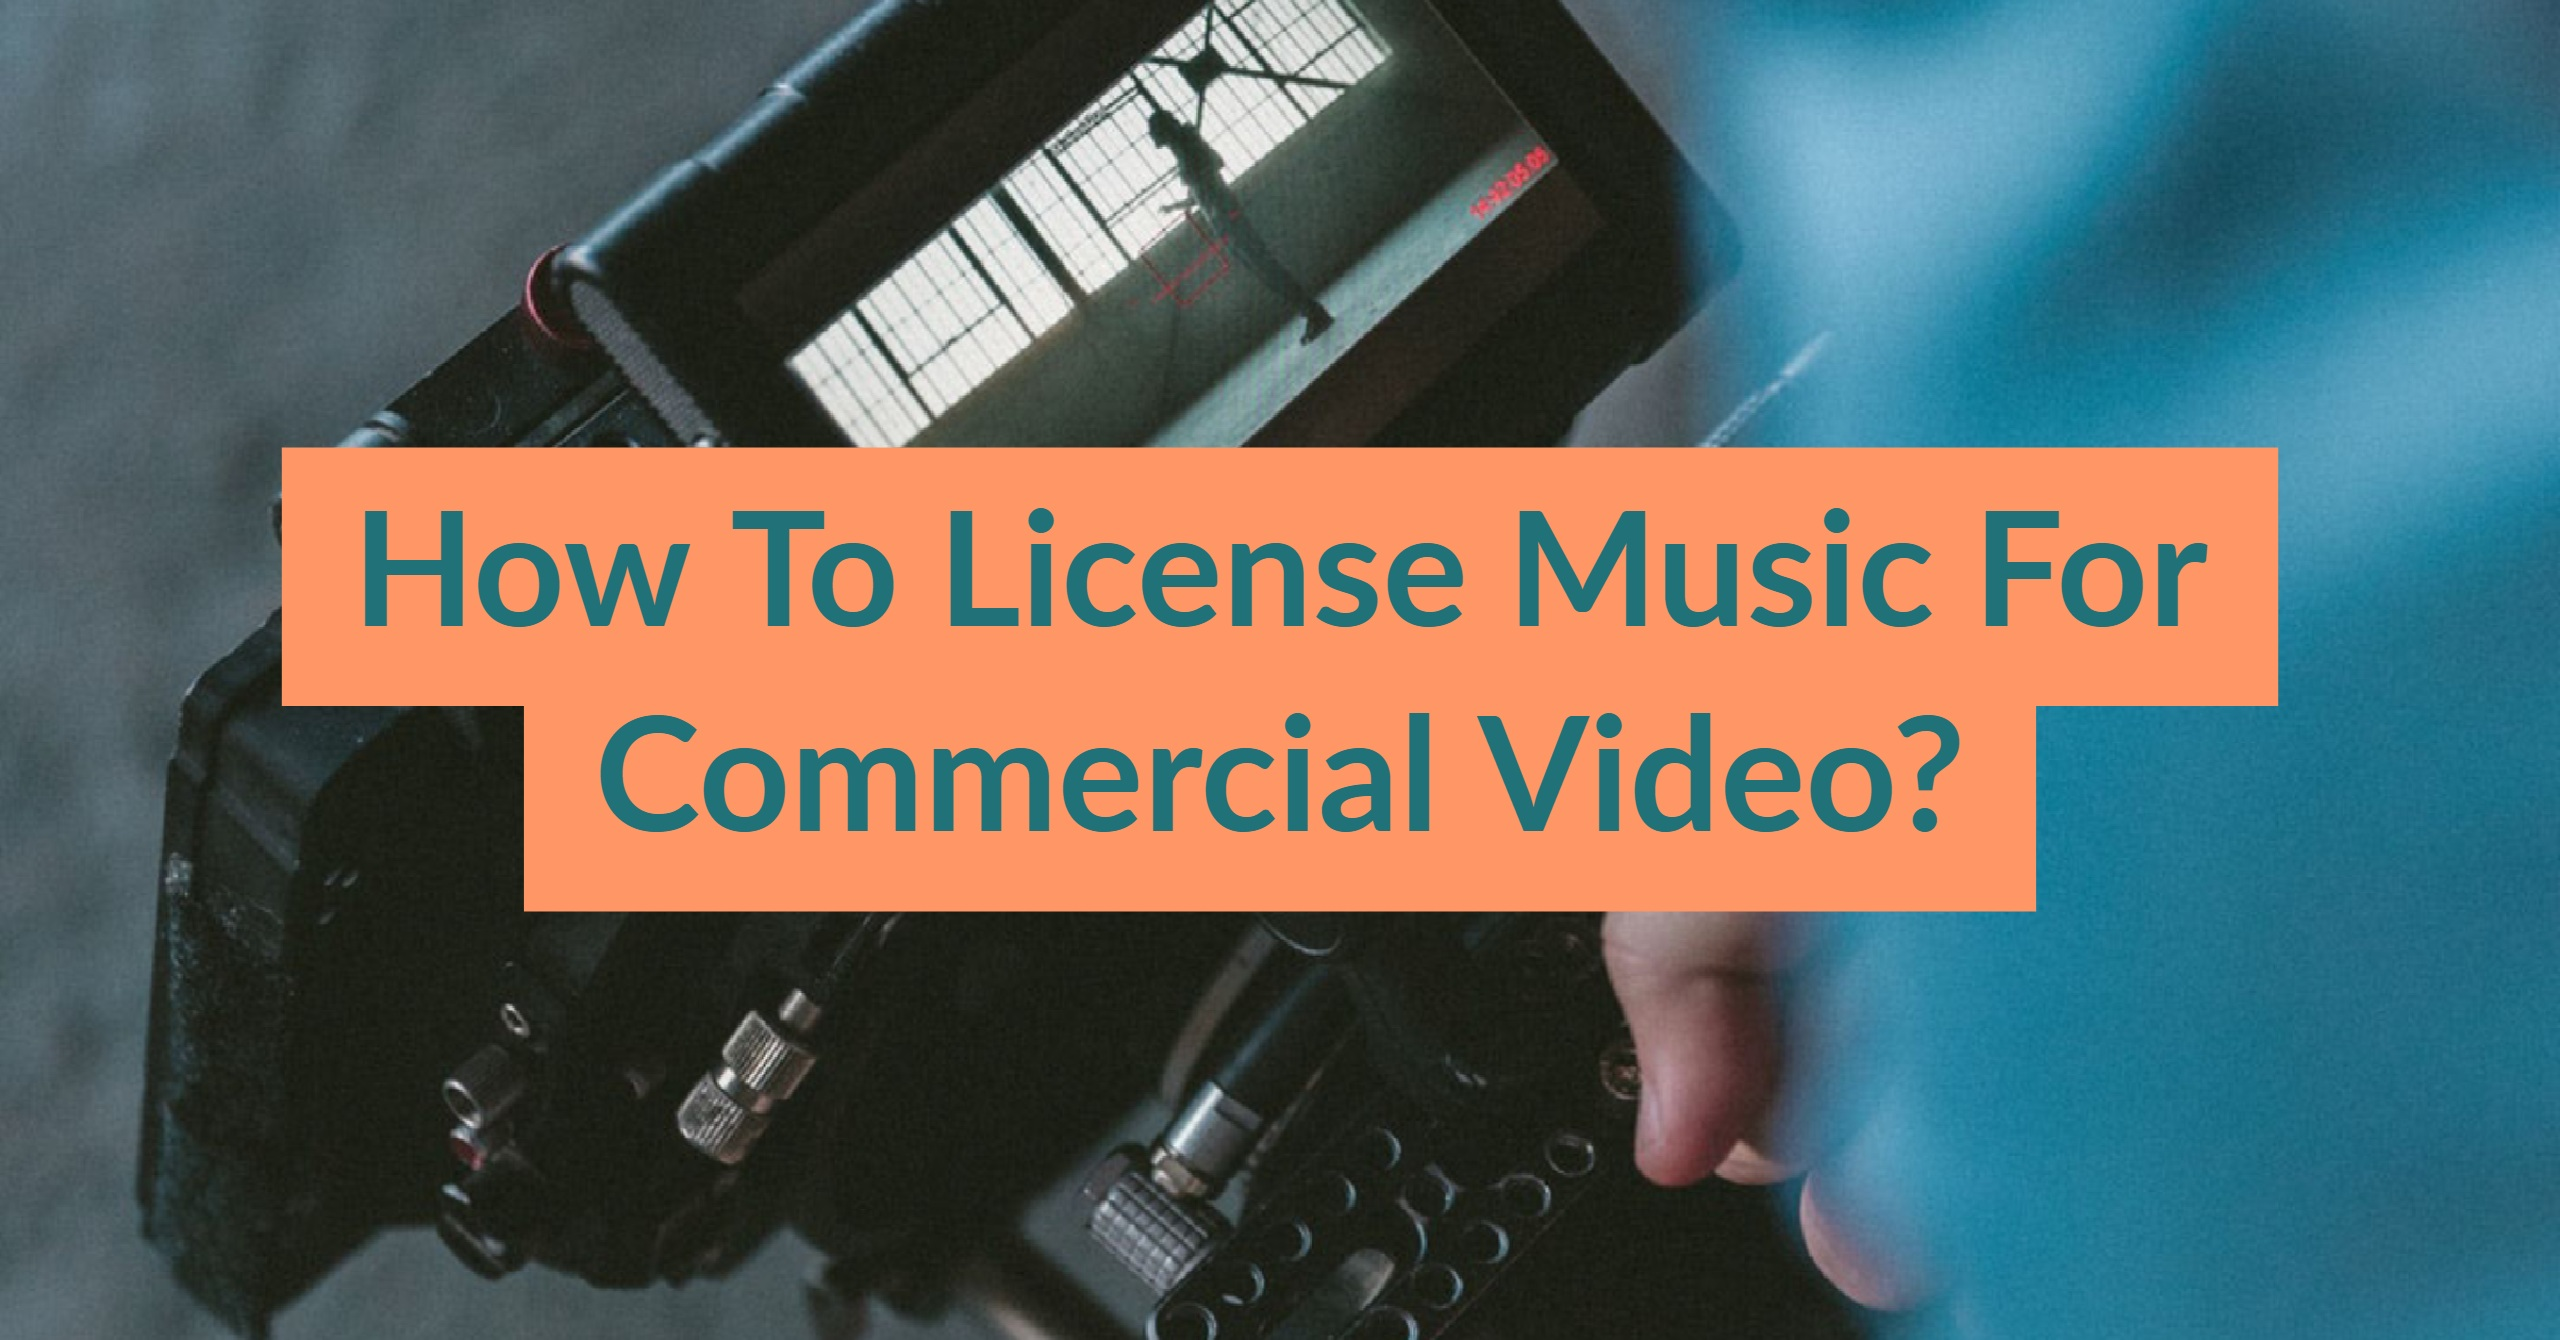 How To License Music For Commercial Business Video